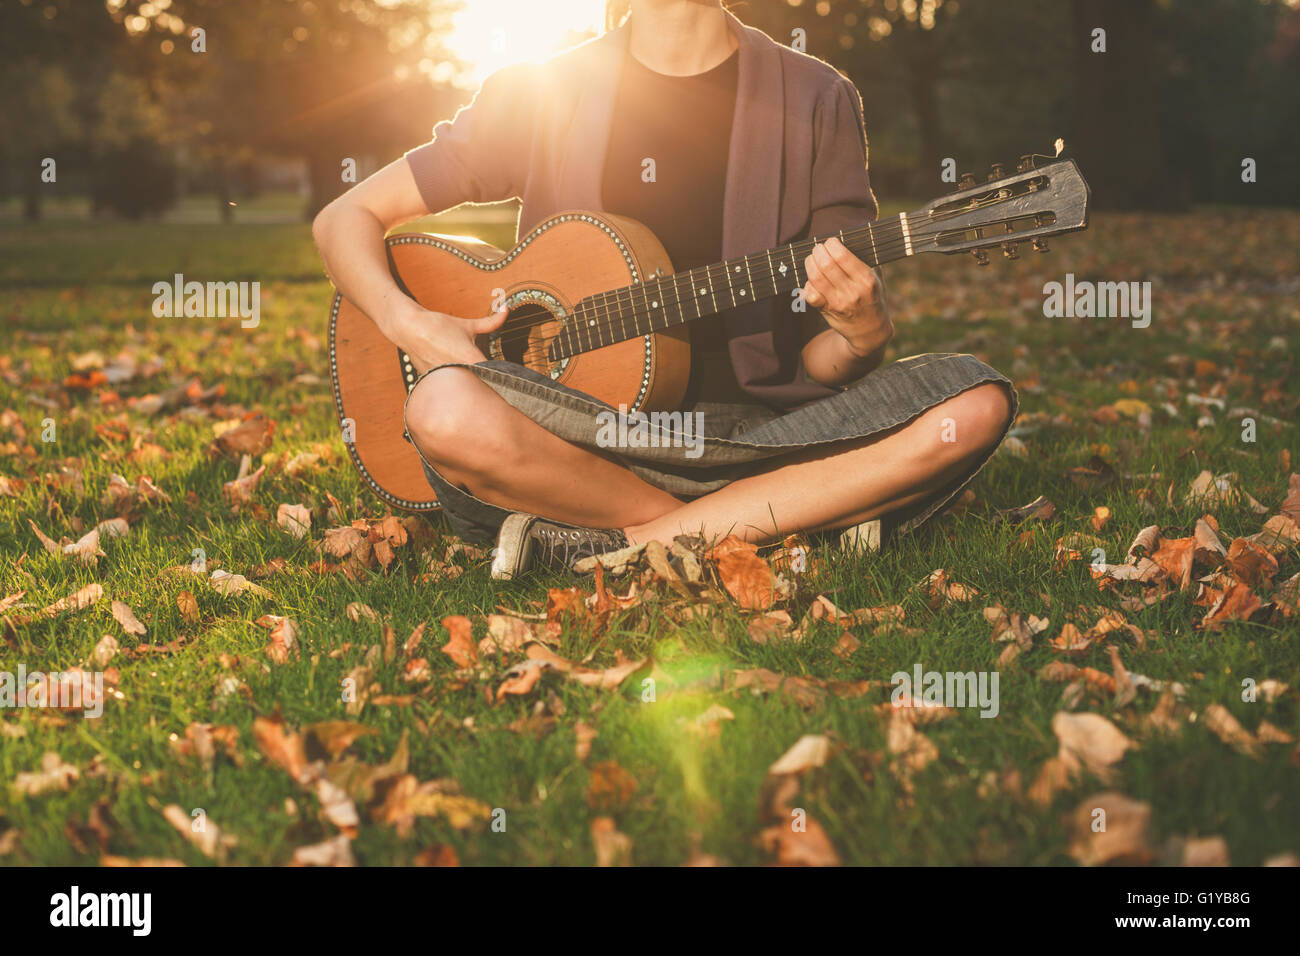 A young woman is sitting on the grass in the park and is playing guitar at sunset - Stock Image